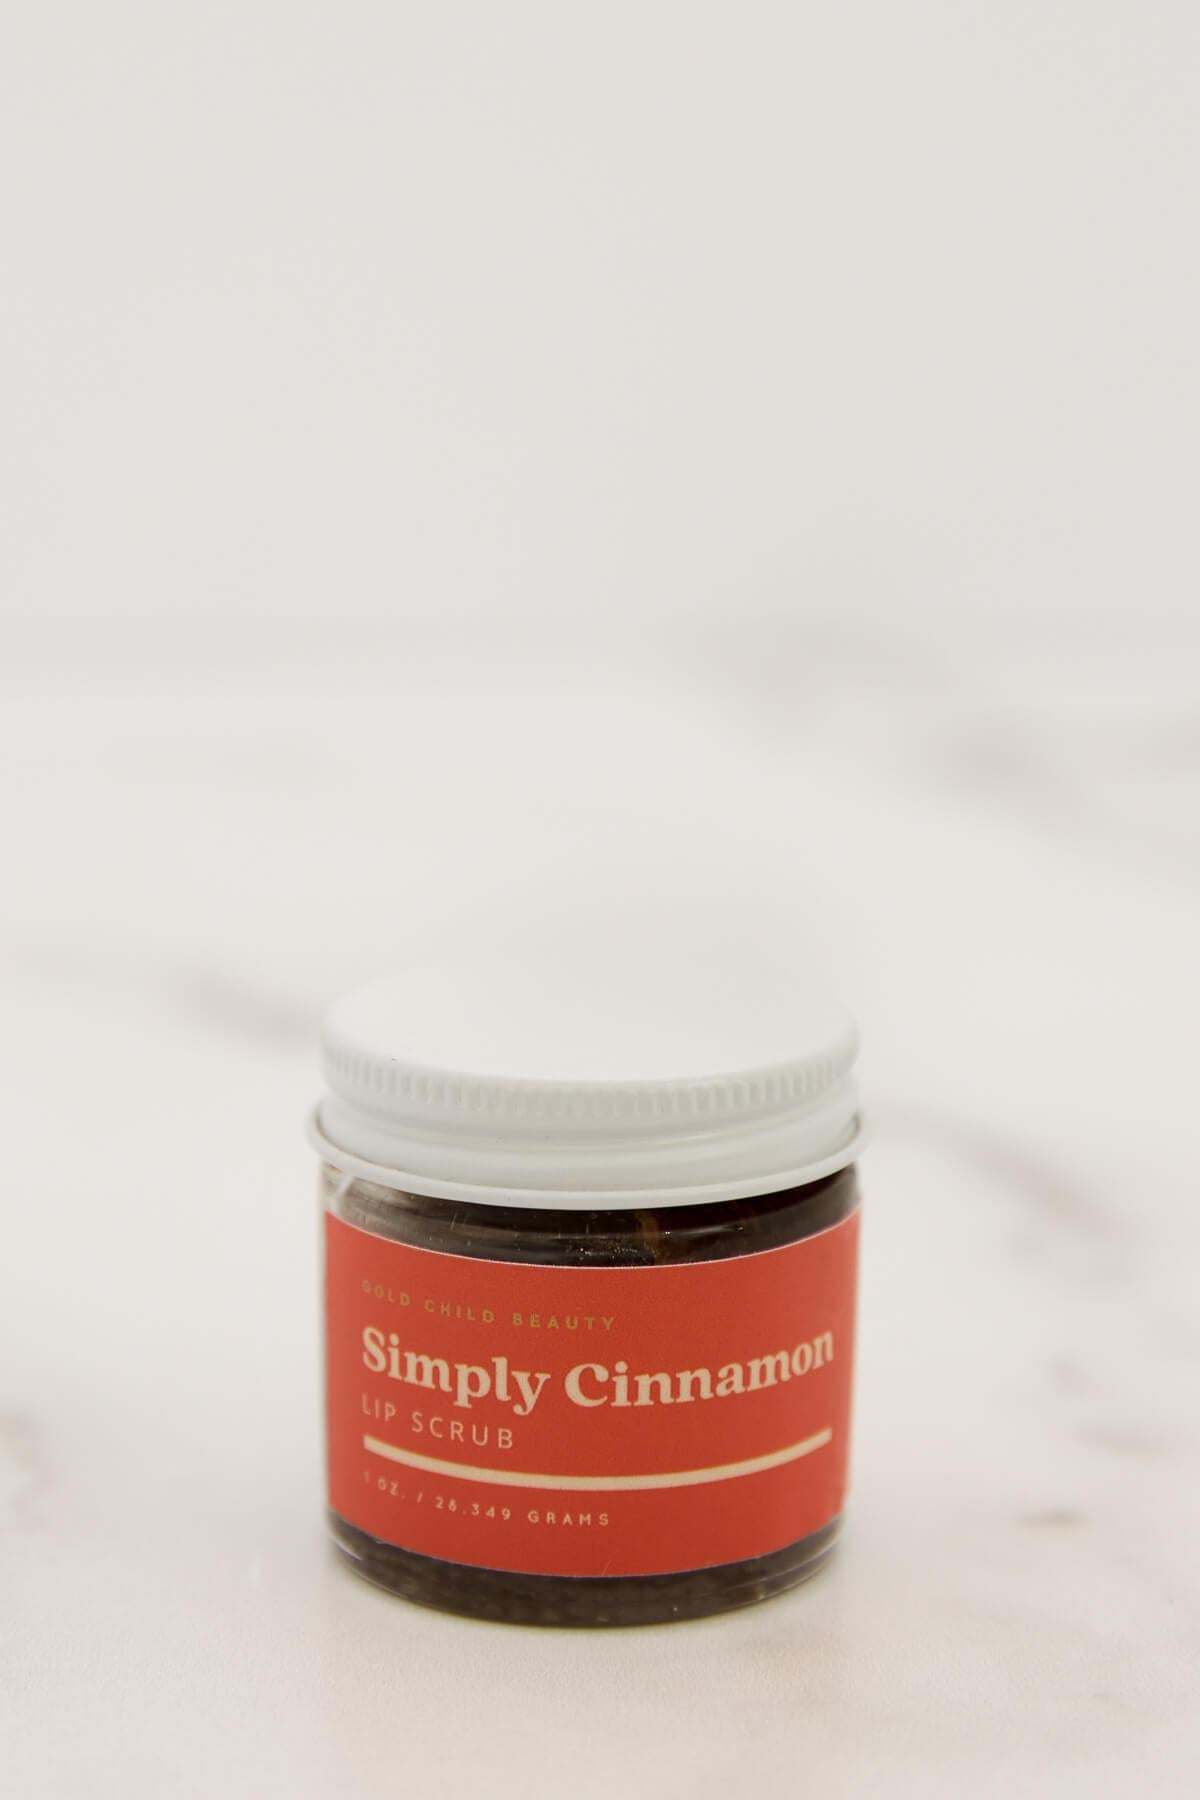 Gold Child Beauty Lip Scrub Simply Cinnamon